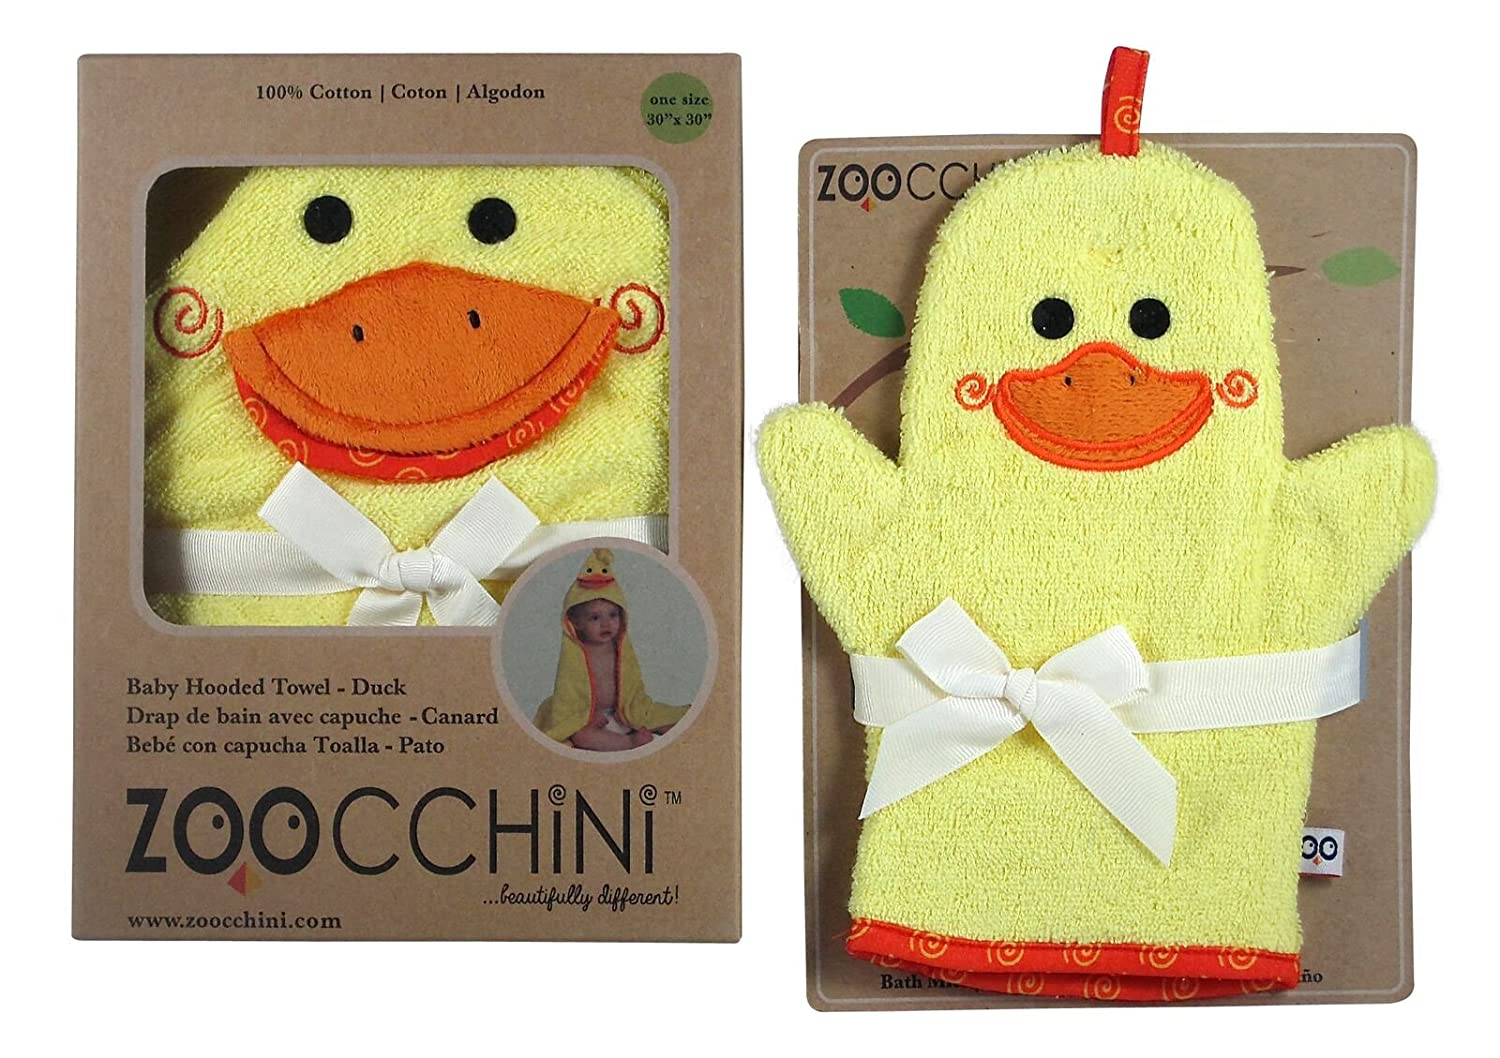 Amazon.com : Zoocchini Baby Super Soft Hooded Baby/Infant Puddles the Duck Towel & Bath Mitt : Baby